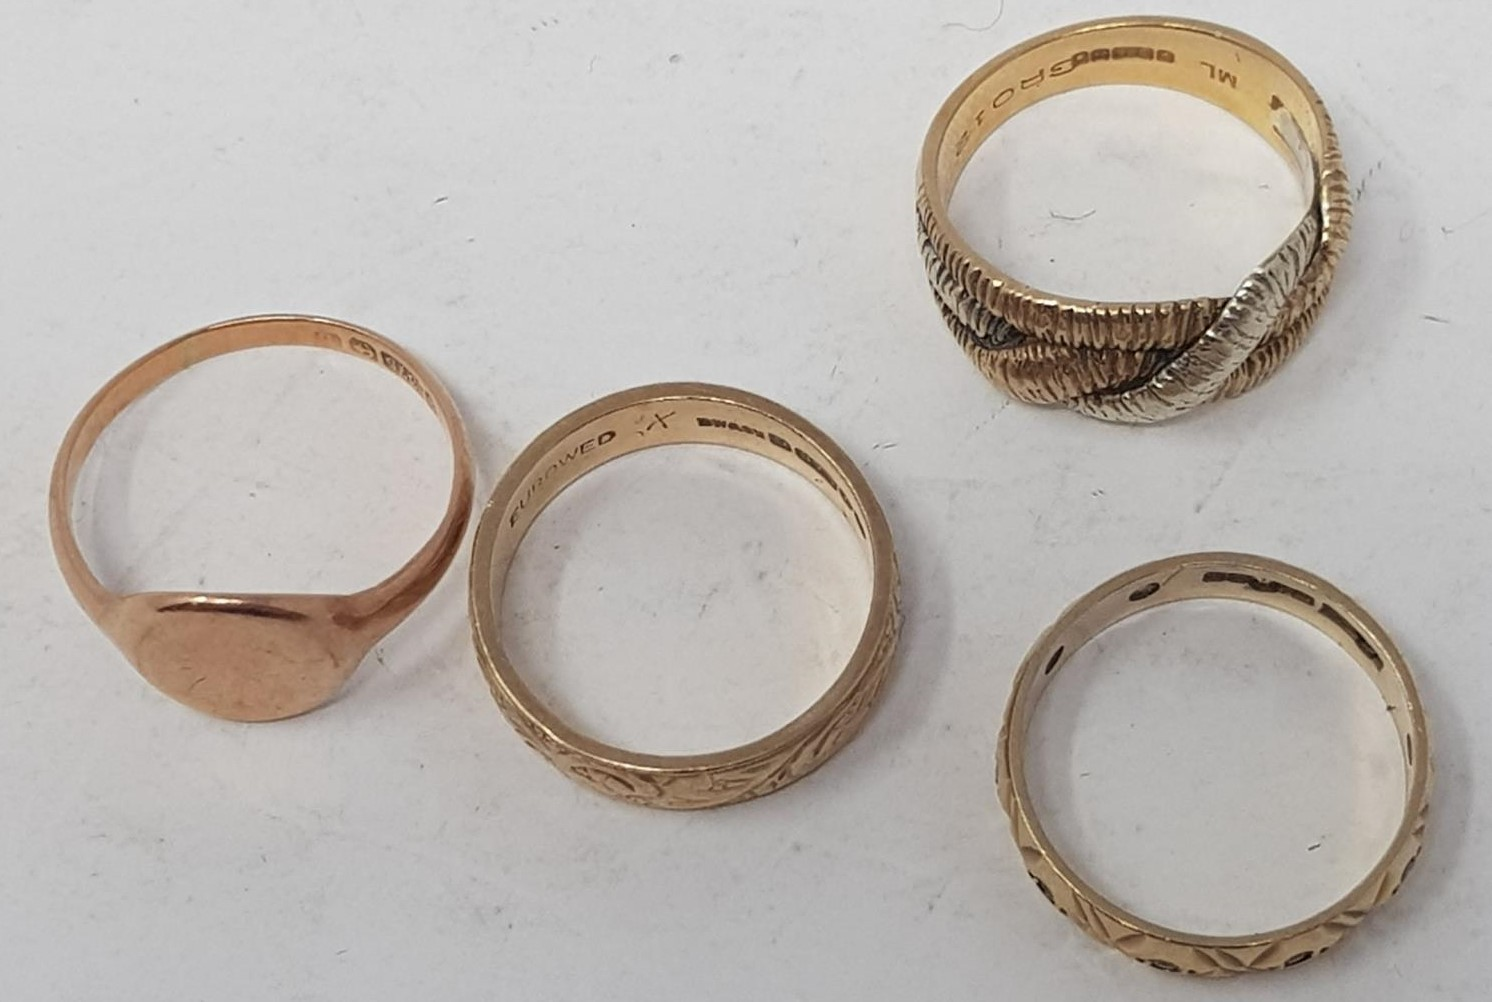 Four 9ct gold rings, 12.0 g - Image 2 of 2